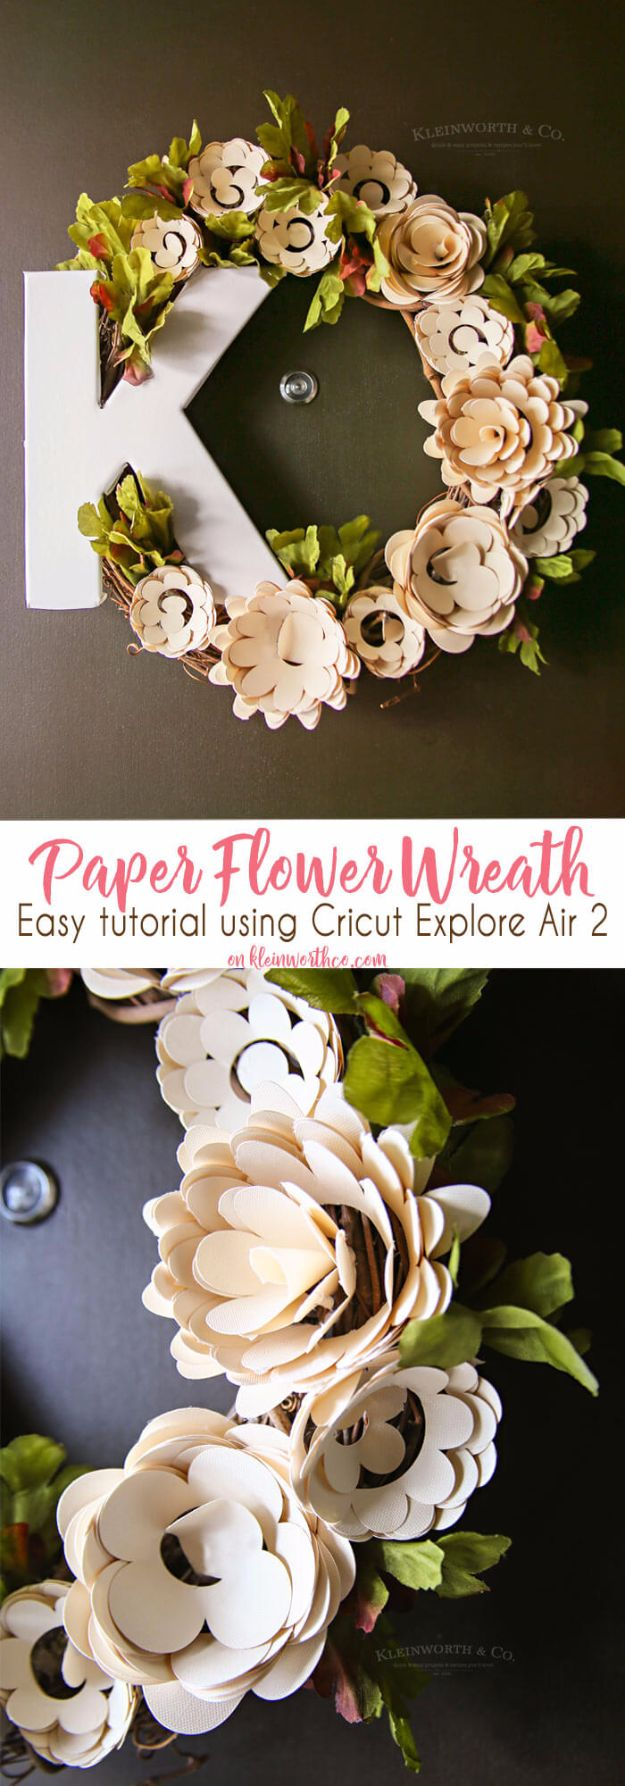 DIY Paper Flowers For Your Room - Paper Flower Wreath Cricut - How To Make A Paper Flower - Large Wedding Backdrop for Wall Decor - Easy Tissue Paper Flower Tutorial for Kids - Giant Projects for Photo Backdrops - Daisy, Roses, Bouquets, Centerpieces - Cricut Template and Step by Step Tutorial http://diyjoy.com/diy-paper-flowers